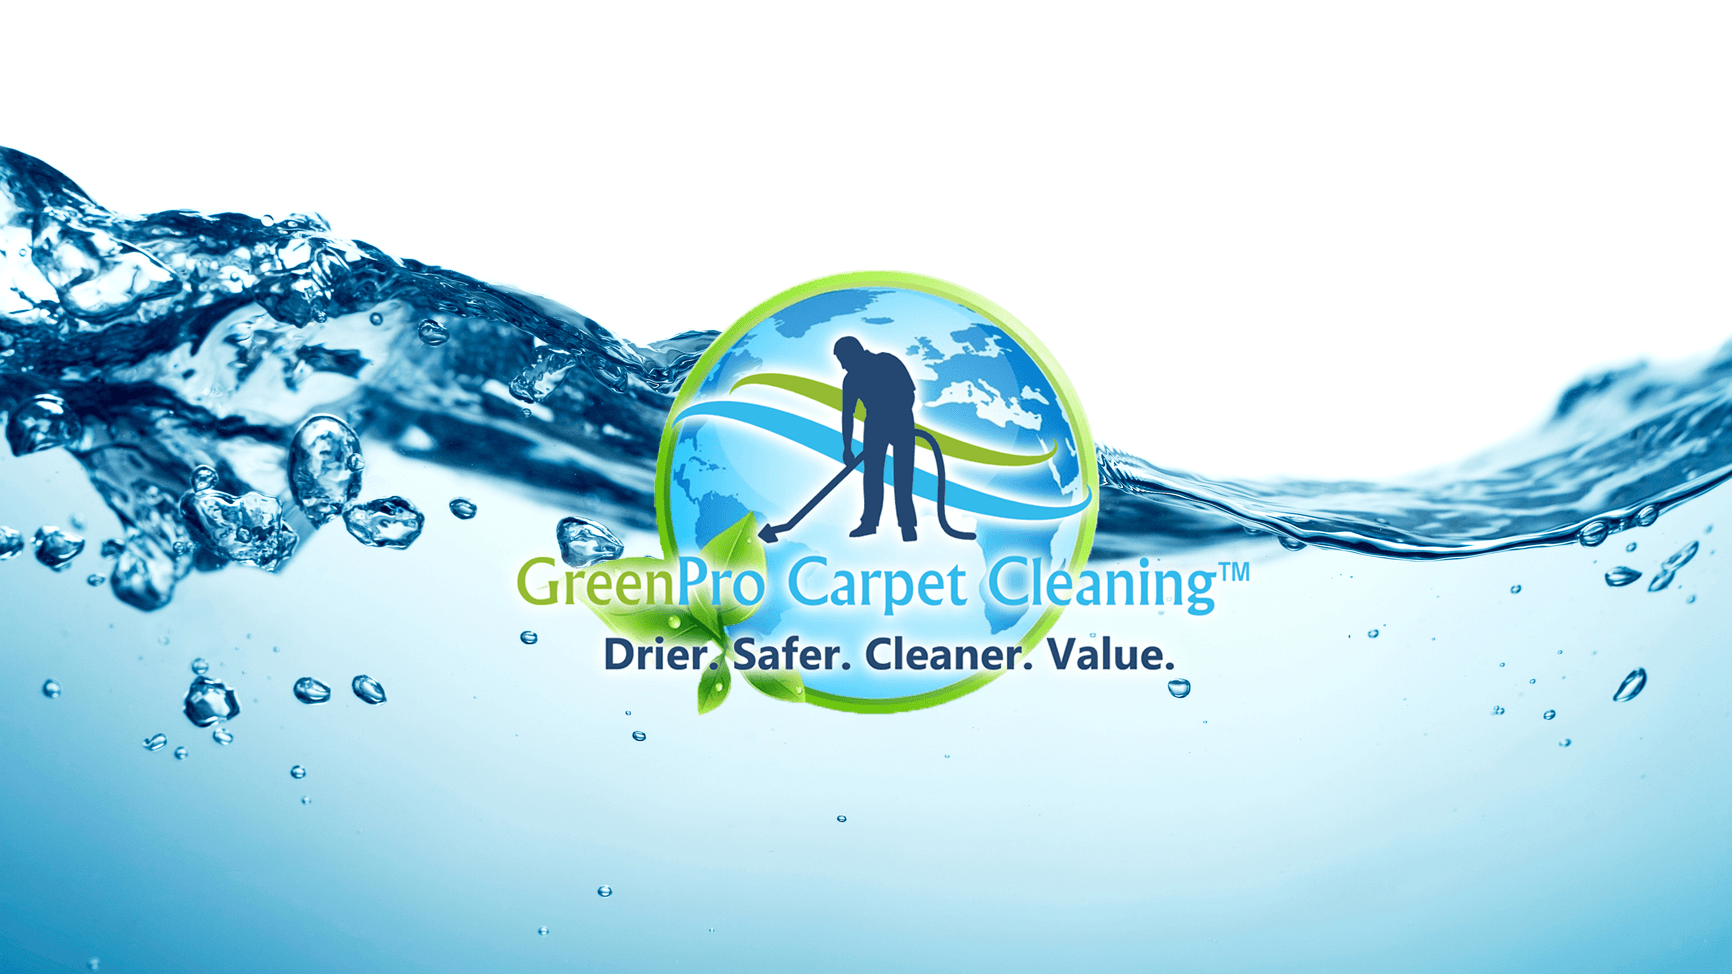 GreenPro Carpet Cleaning Logo